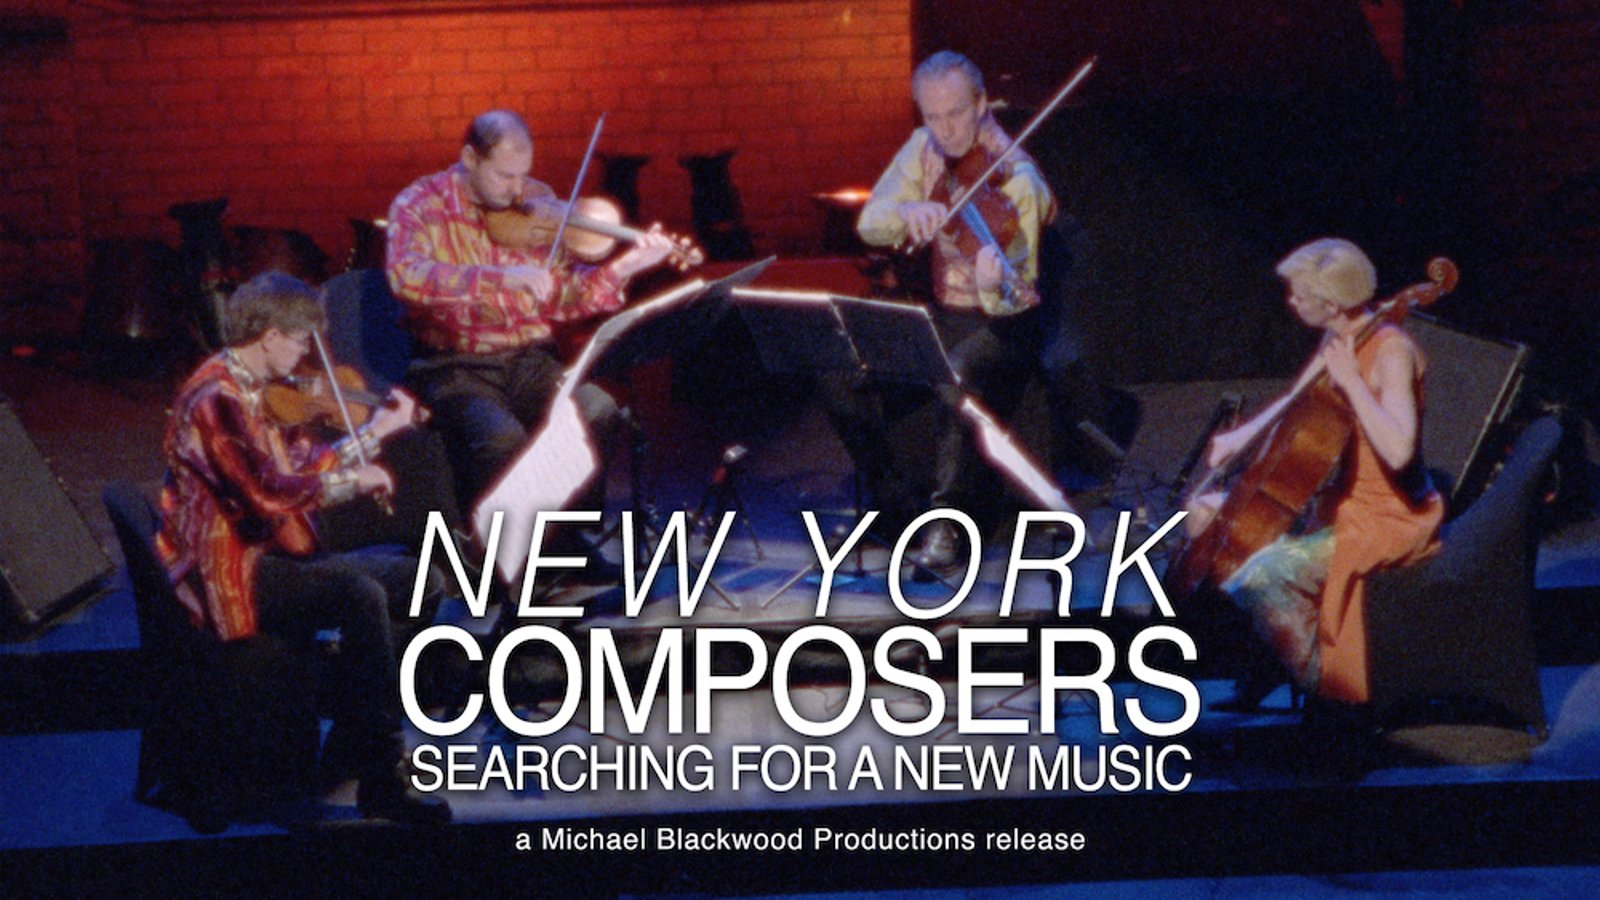 New York Composers